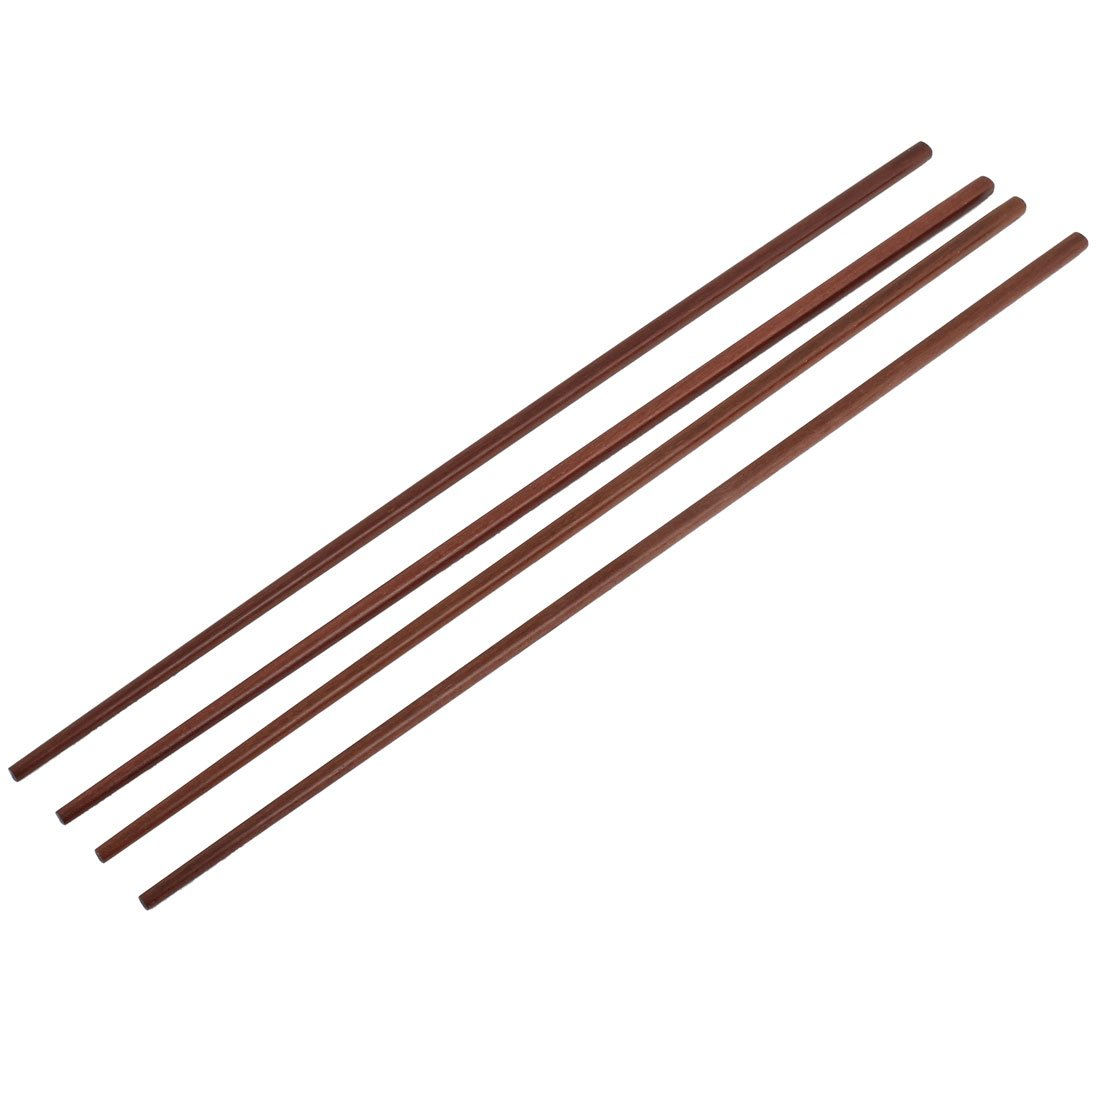 42cm Extra Long Wood Chopsticks Dark Brown Tapered for Kitchen Noodles Cooking